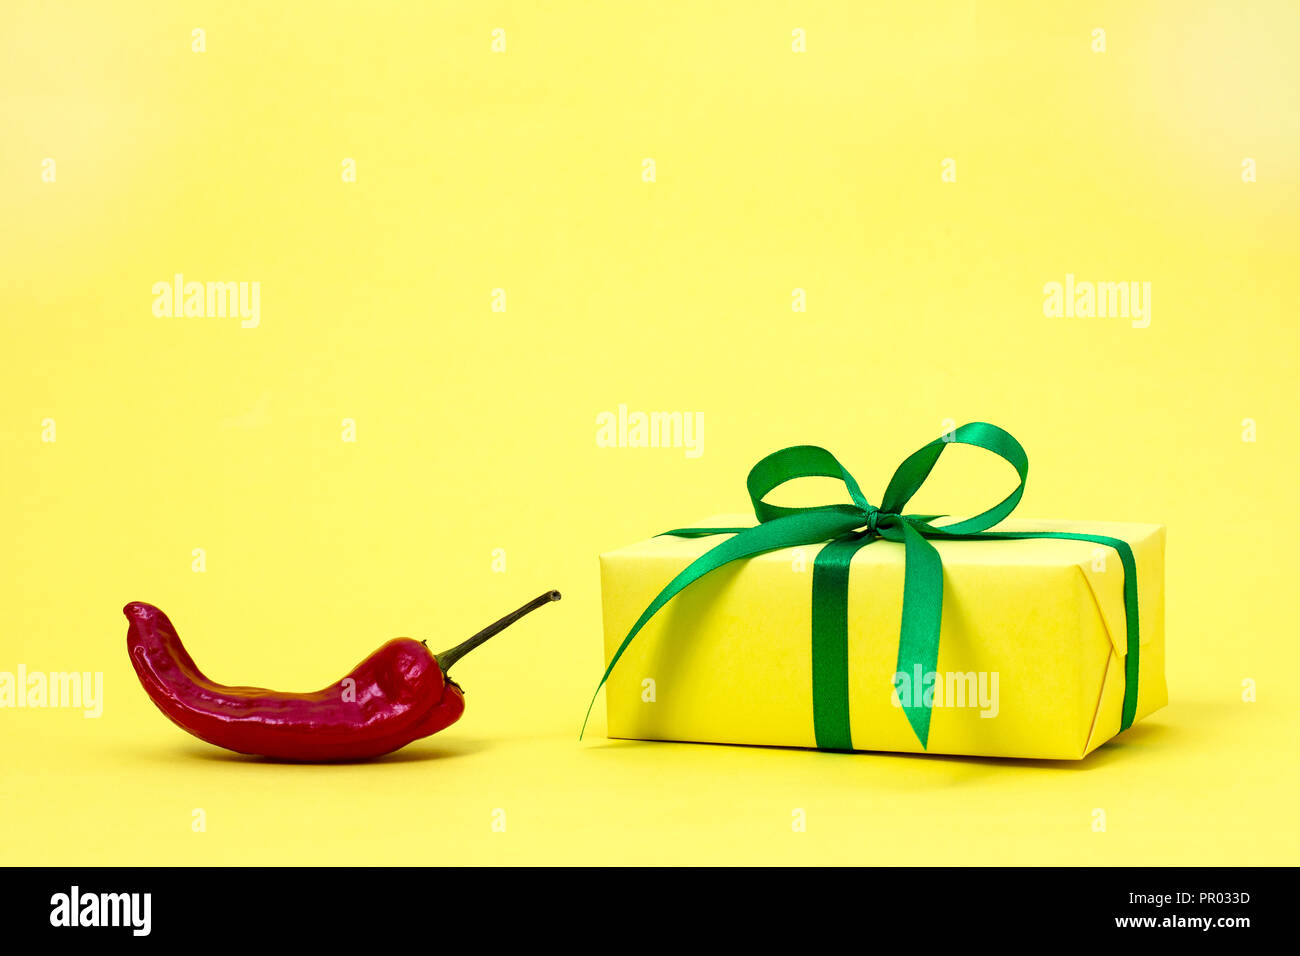 hight resolution of red sharp useful bitter delicious vegetable pepper bright yellow gift box on a simple background symbol of love power and passion